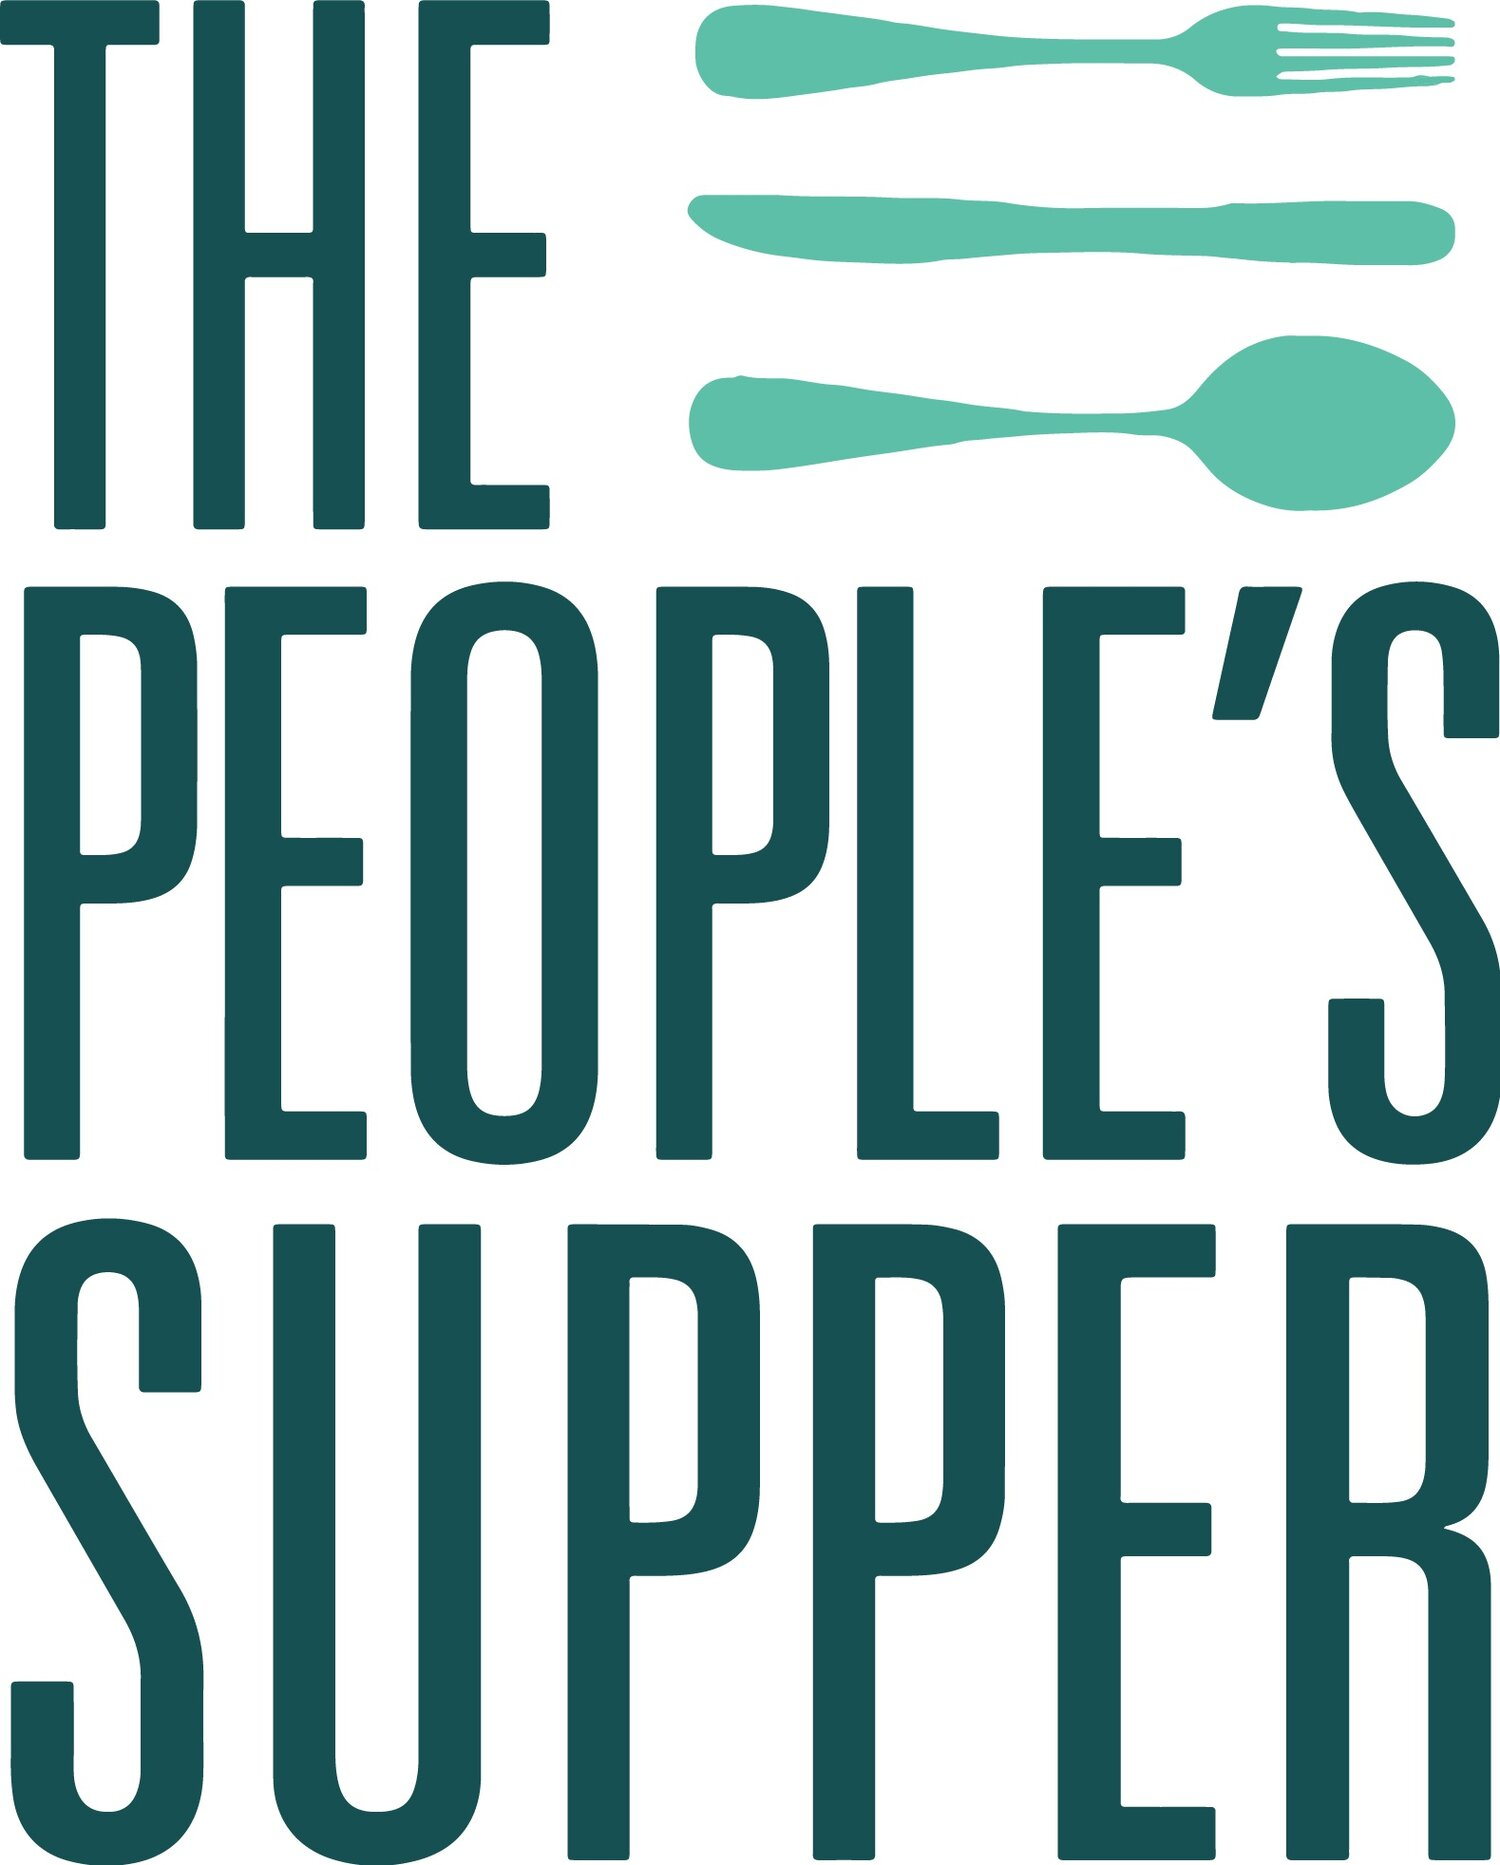 The People's Supper